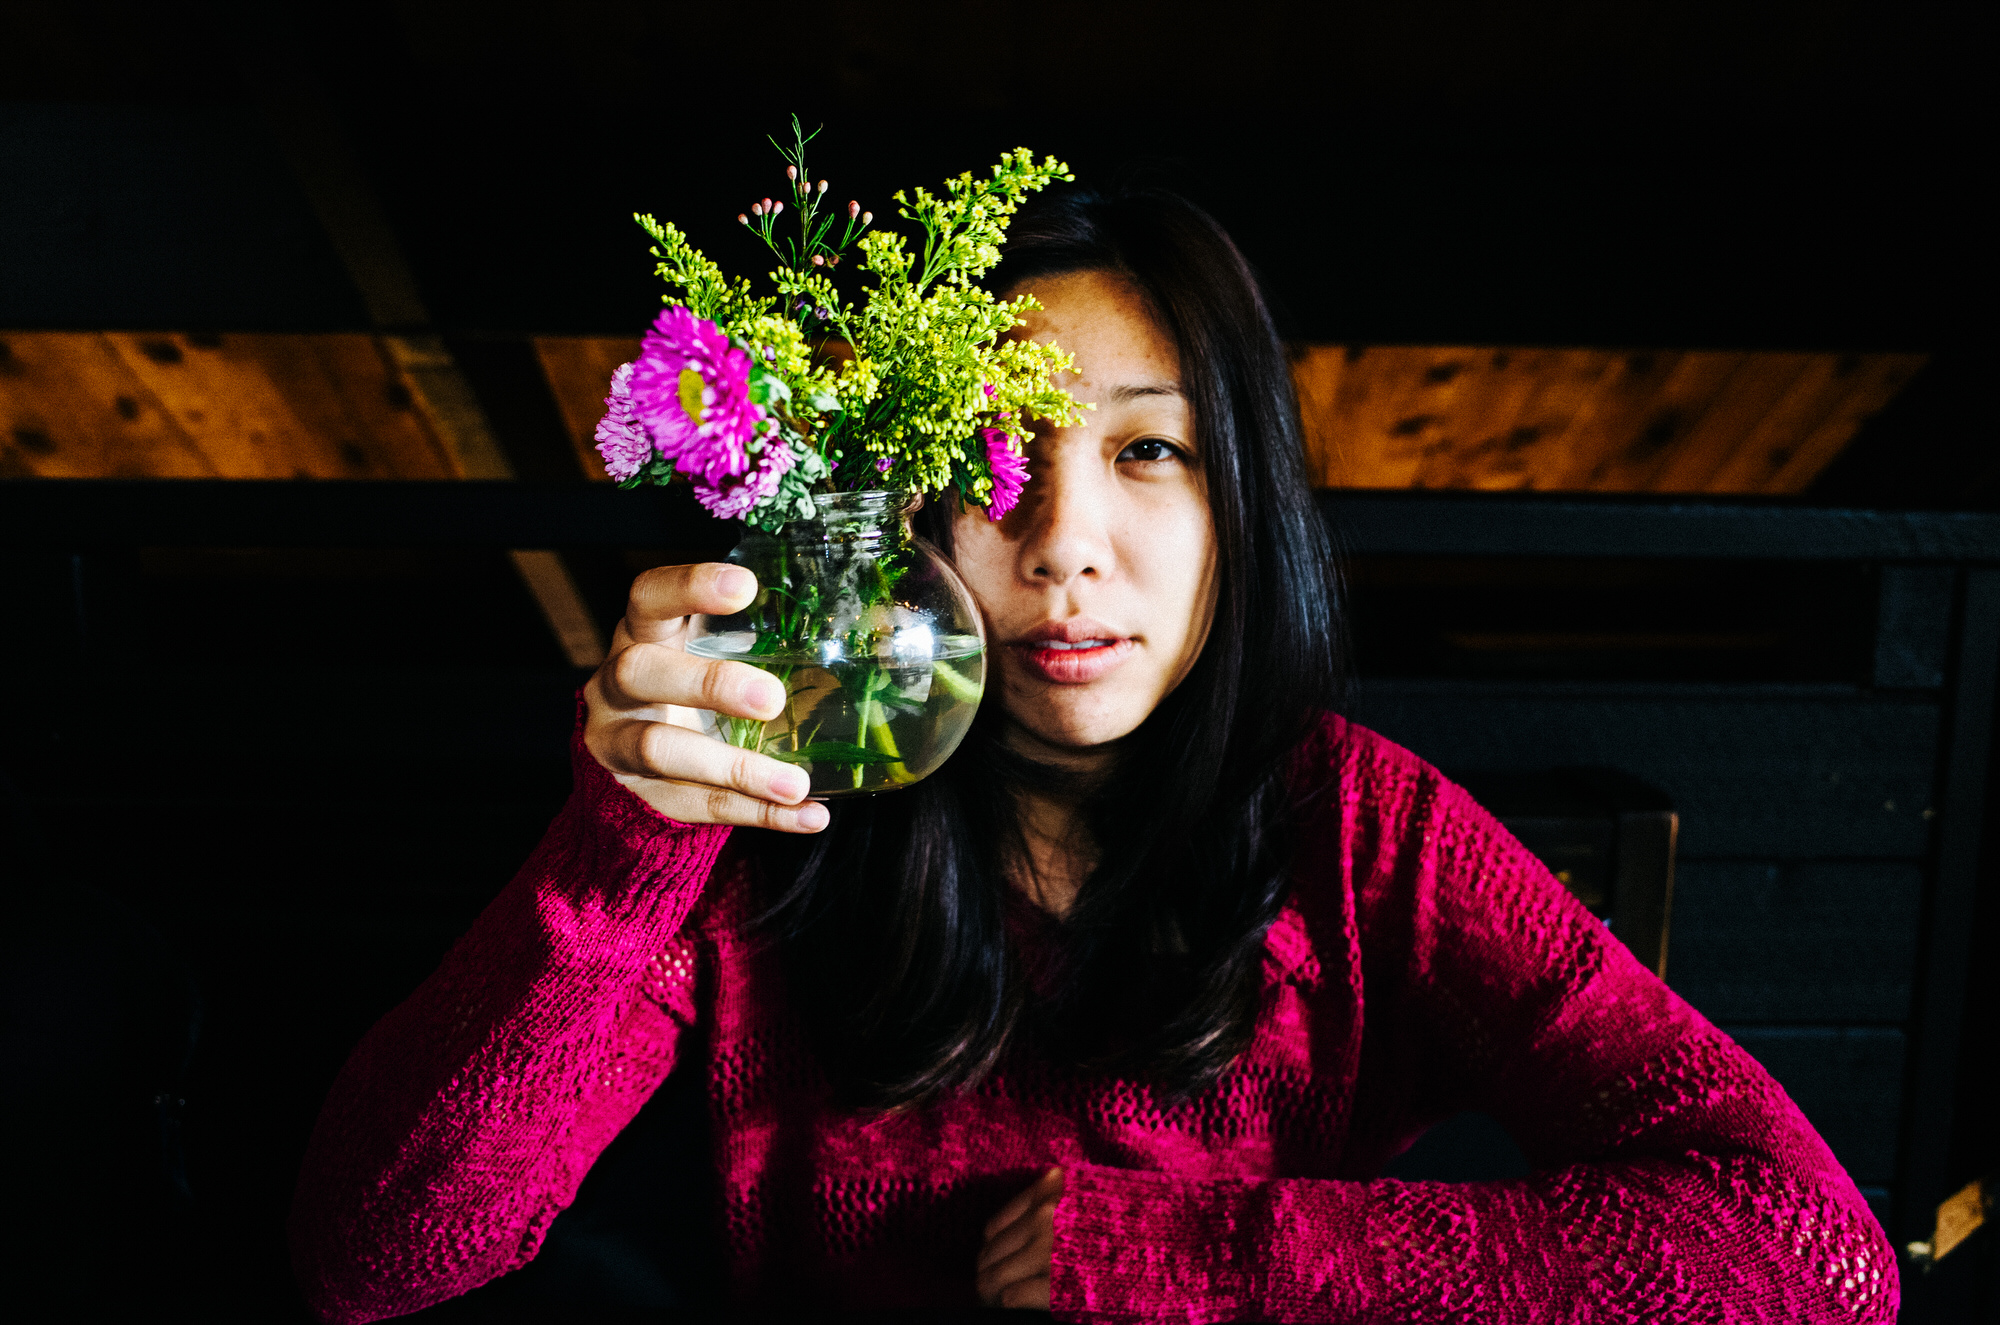 eric kim photography - Cindy Project - color-5